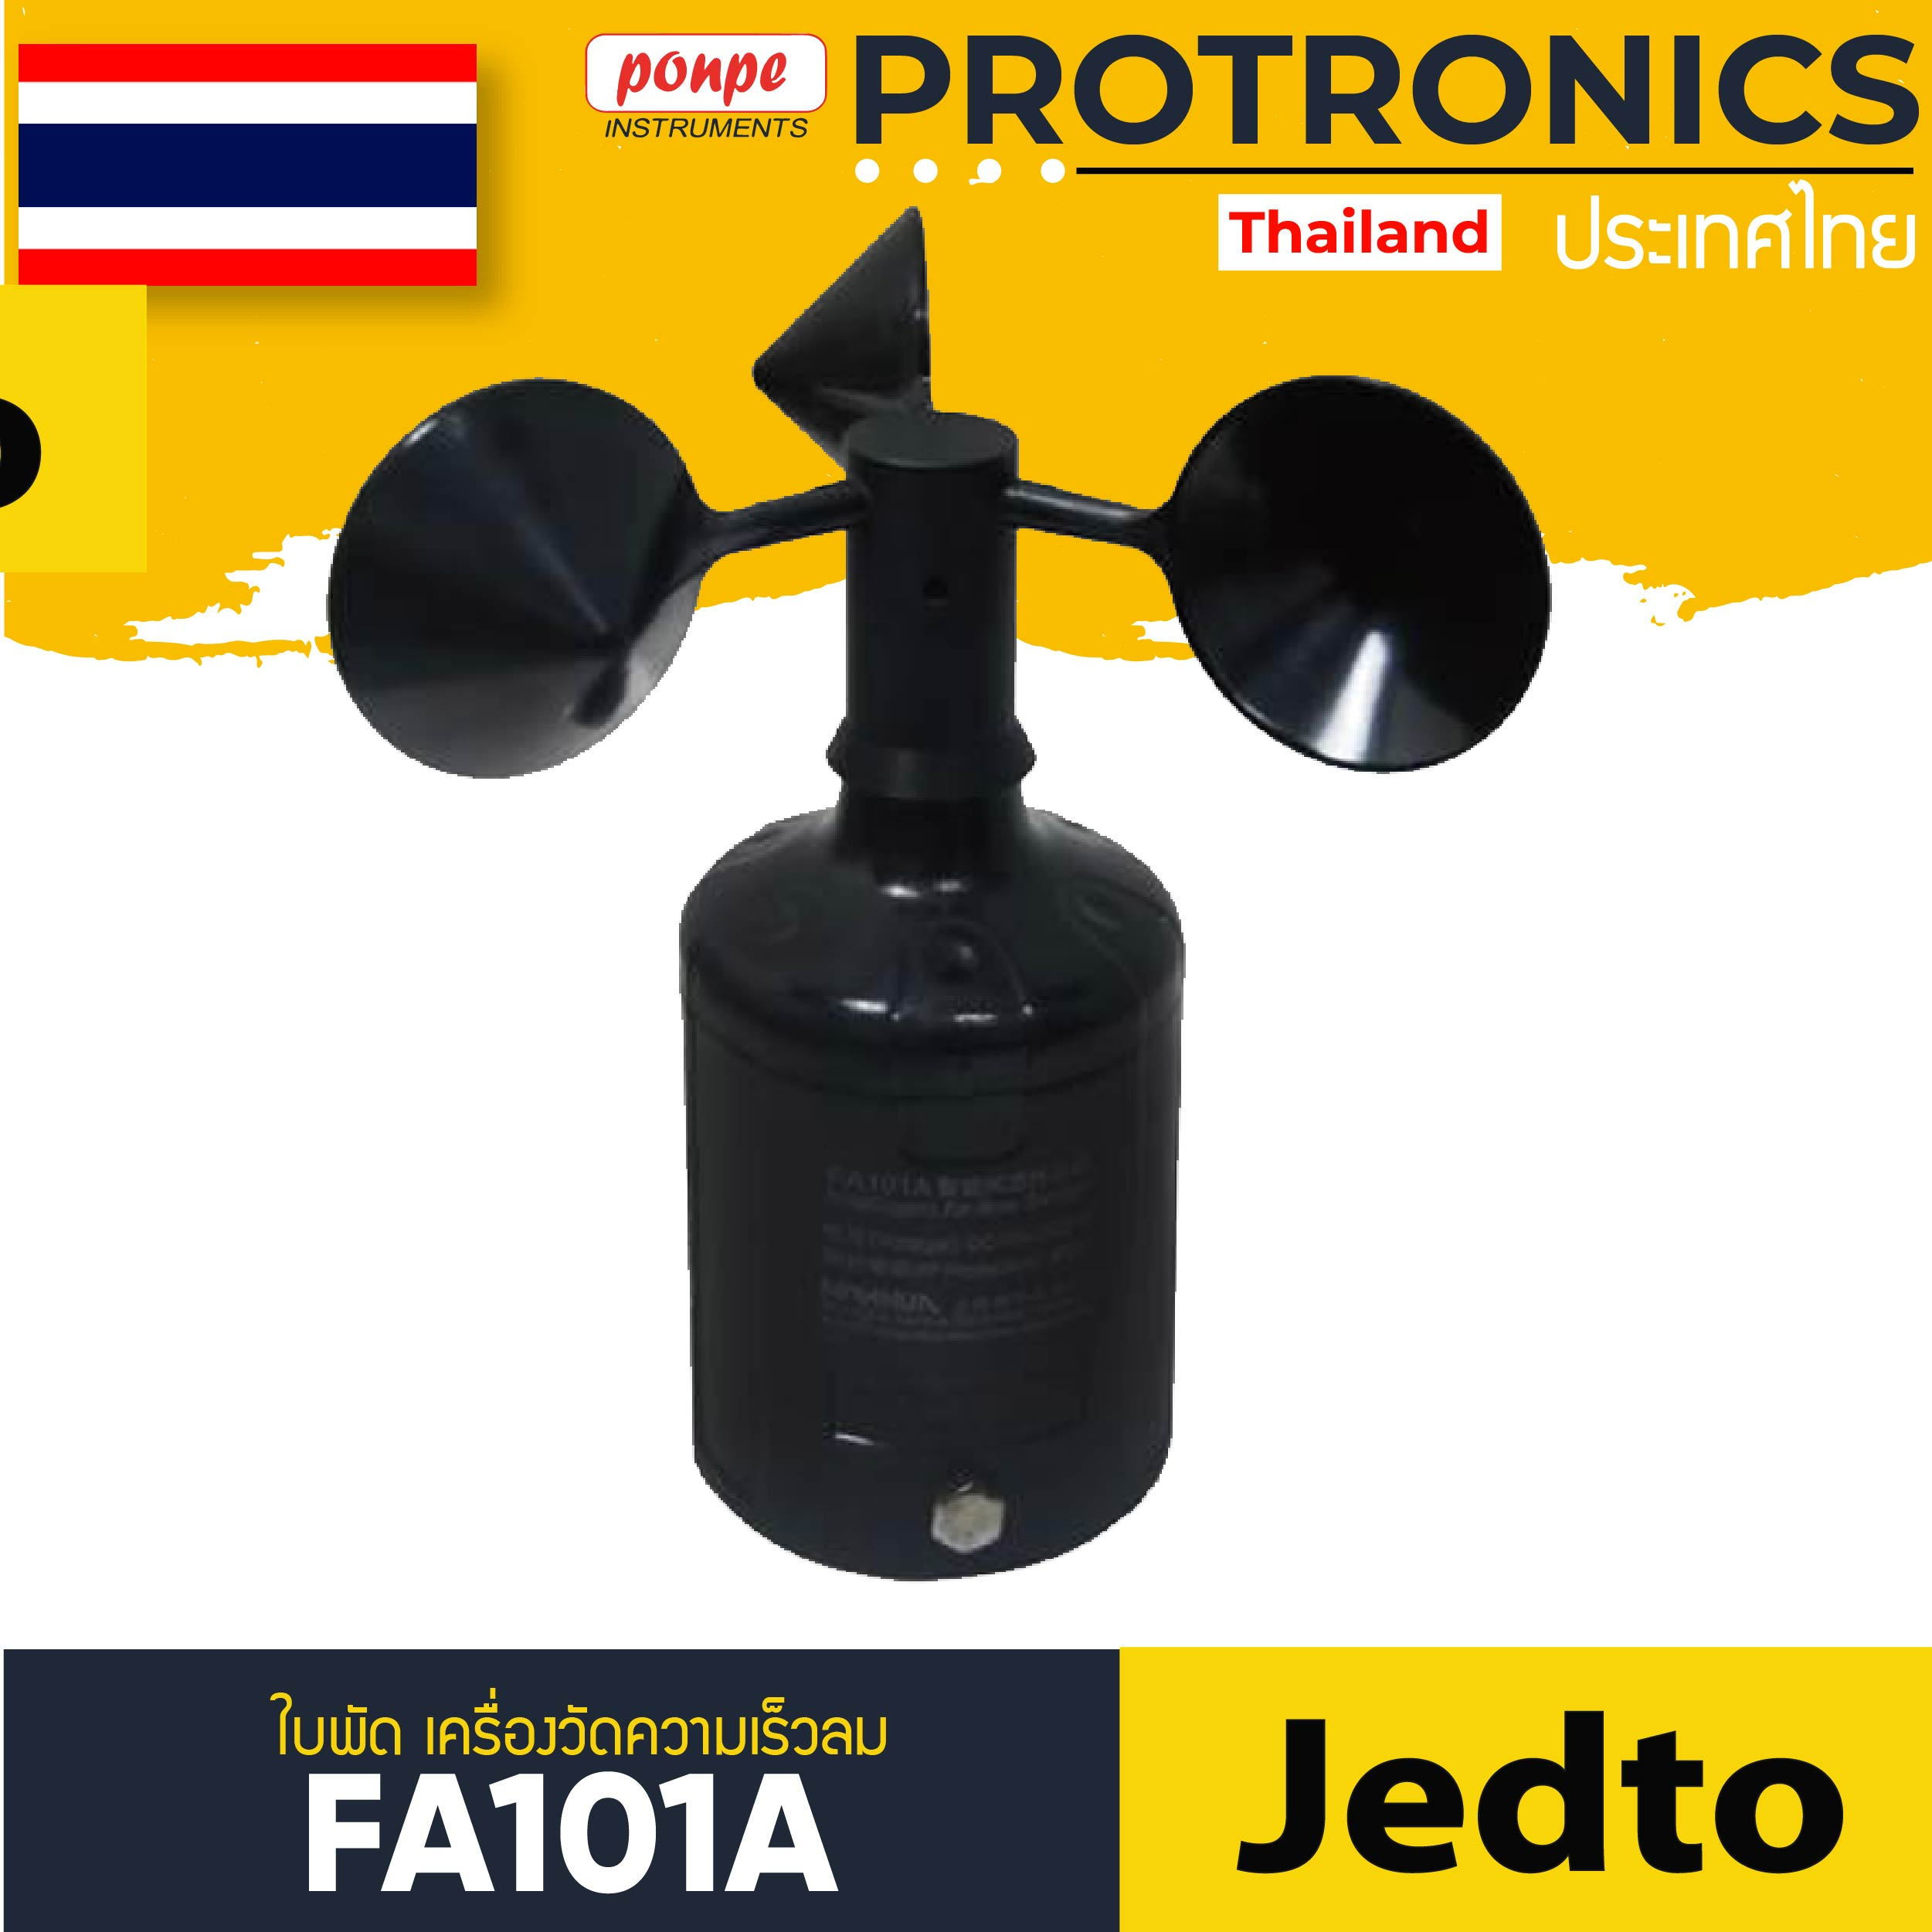 FA101A / JEDTO Cup Transmitter